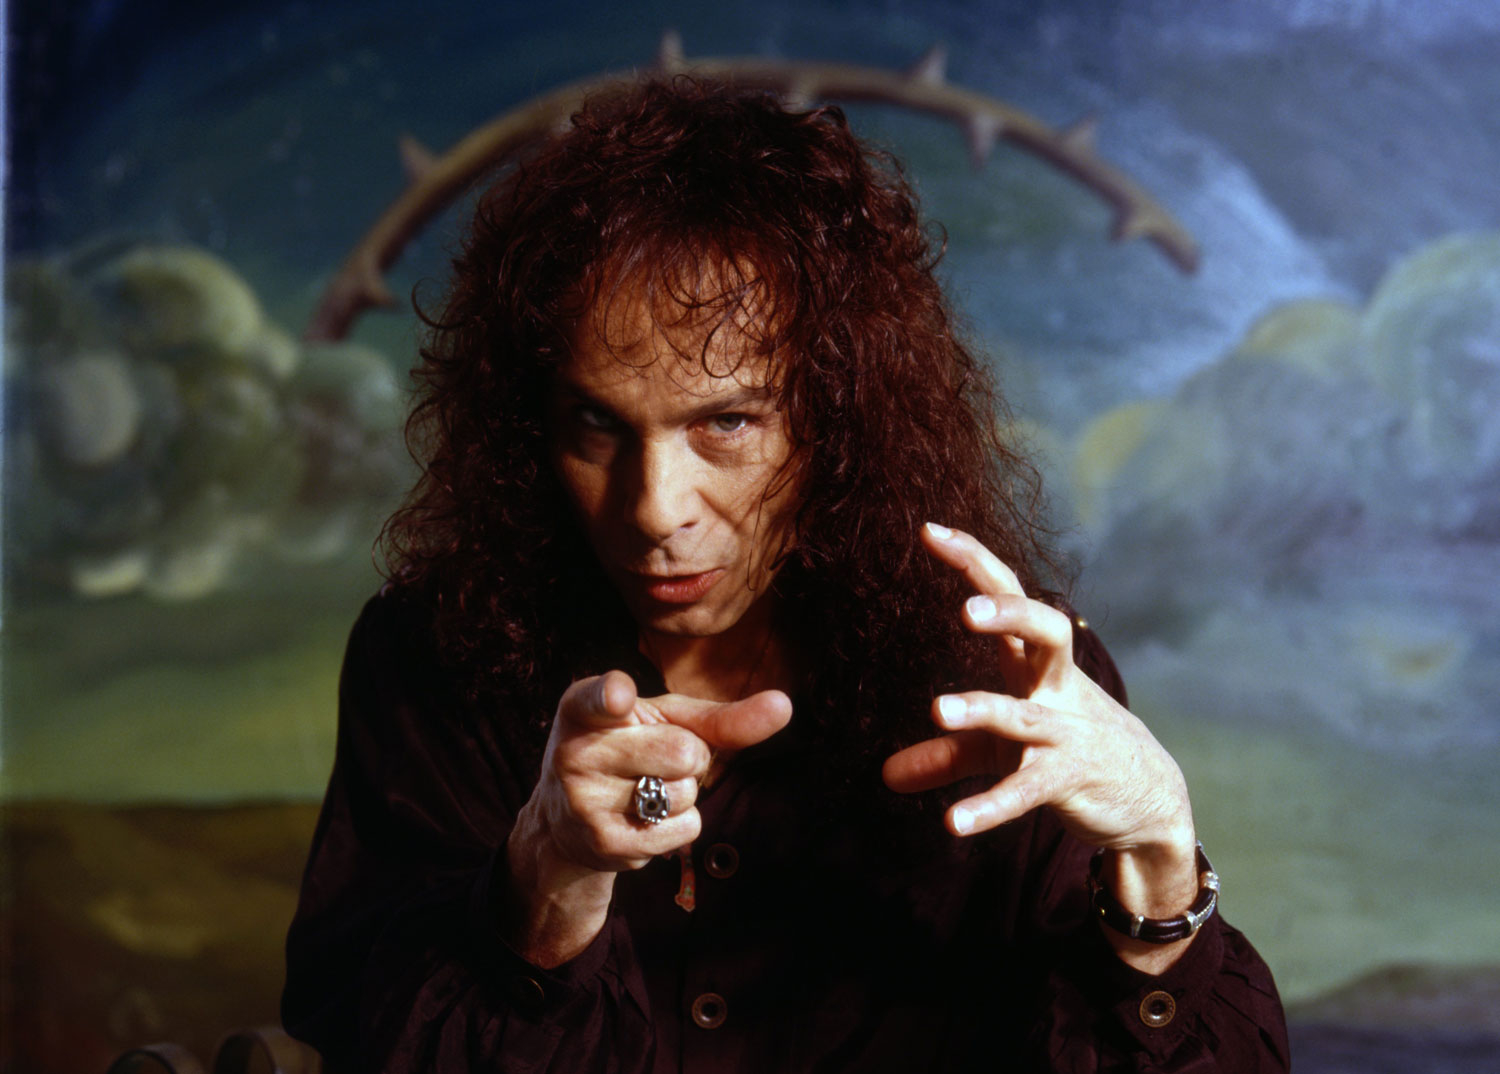 Metal Icon Ronnie James Dio Dead at 67 After Cancer Battle ...